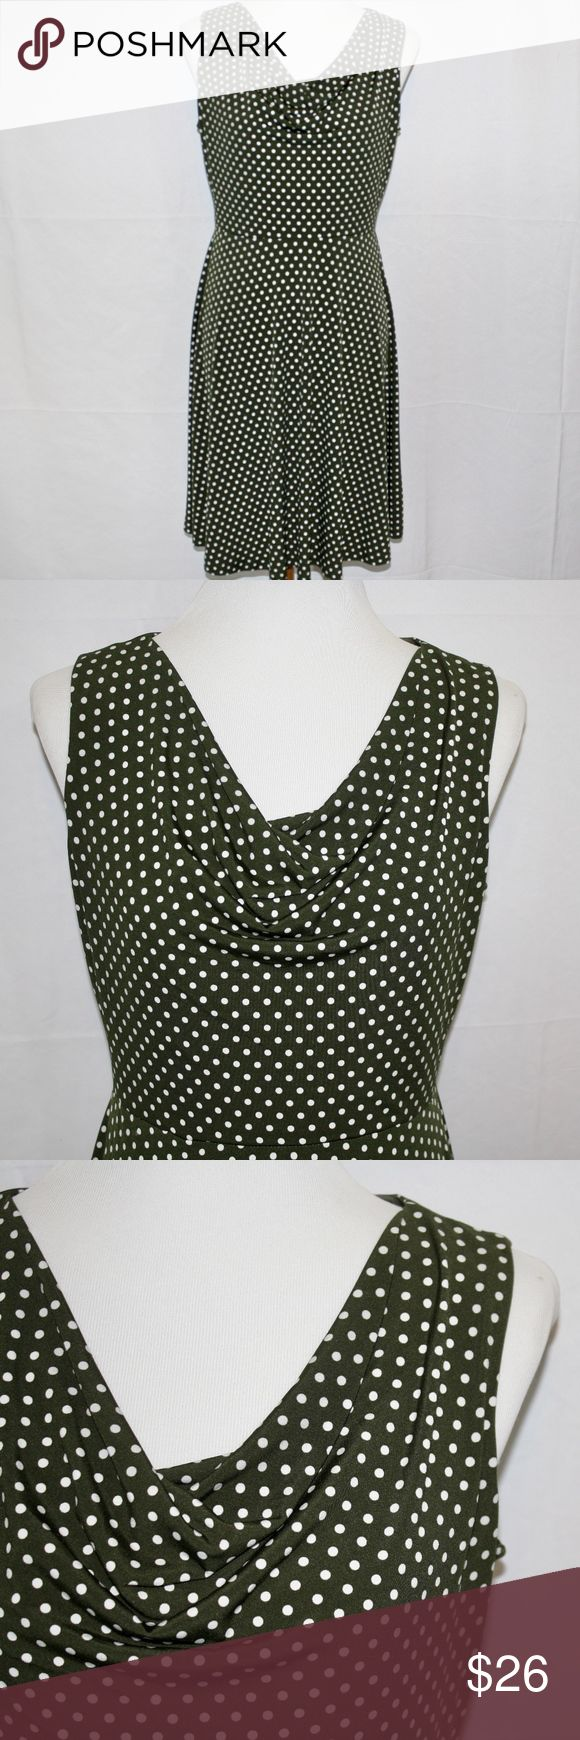 "En Focus Studio Green and White Polka Dot Dress z In excellent used condition only worm once! Moss green and white polka dot cowl neck, A-line dress. Made from 95% polyester and 5% spandex. Approximate Measurements; Length: 35"" Underarm to underarm: 17"" EnFocus Dresses"